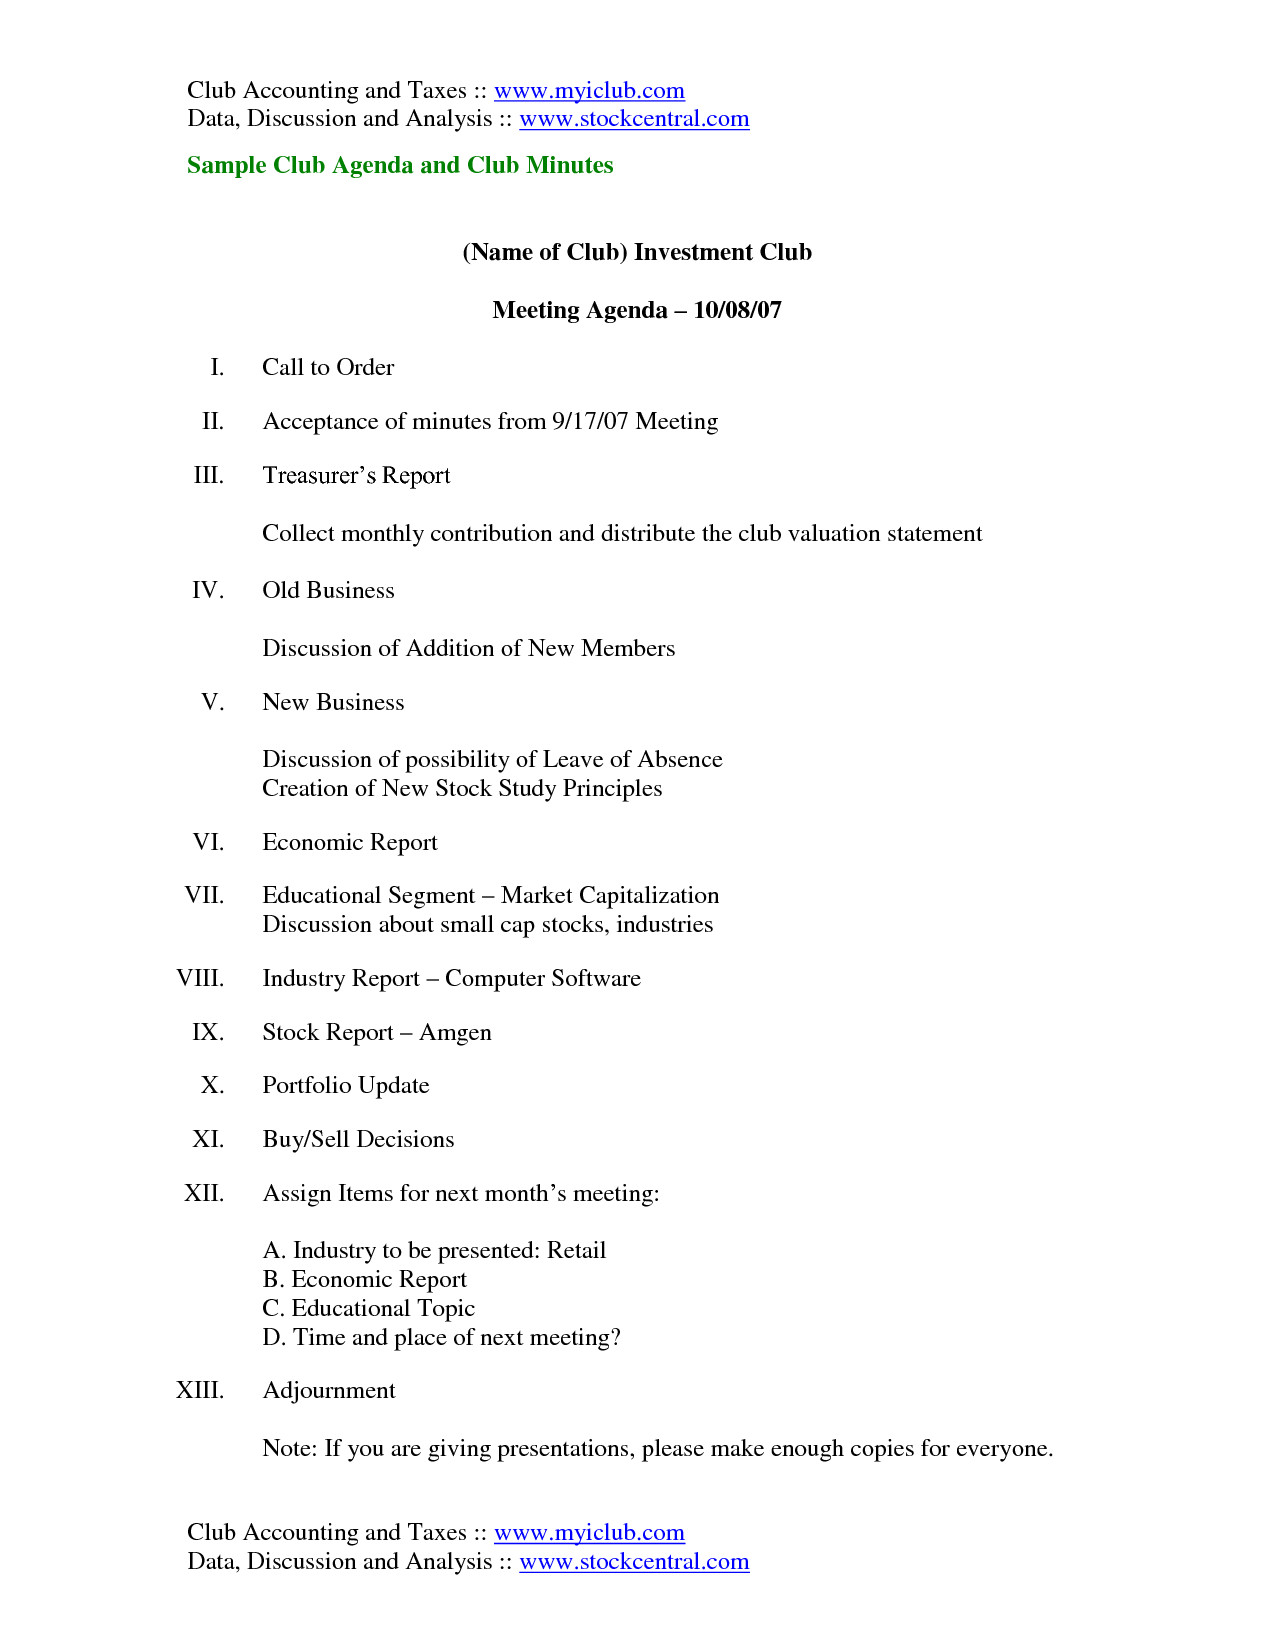 Booster Club Meeting Minutes Template Best S Of Club Meeting Minutes Template toastmaster